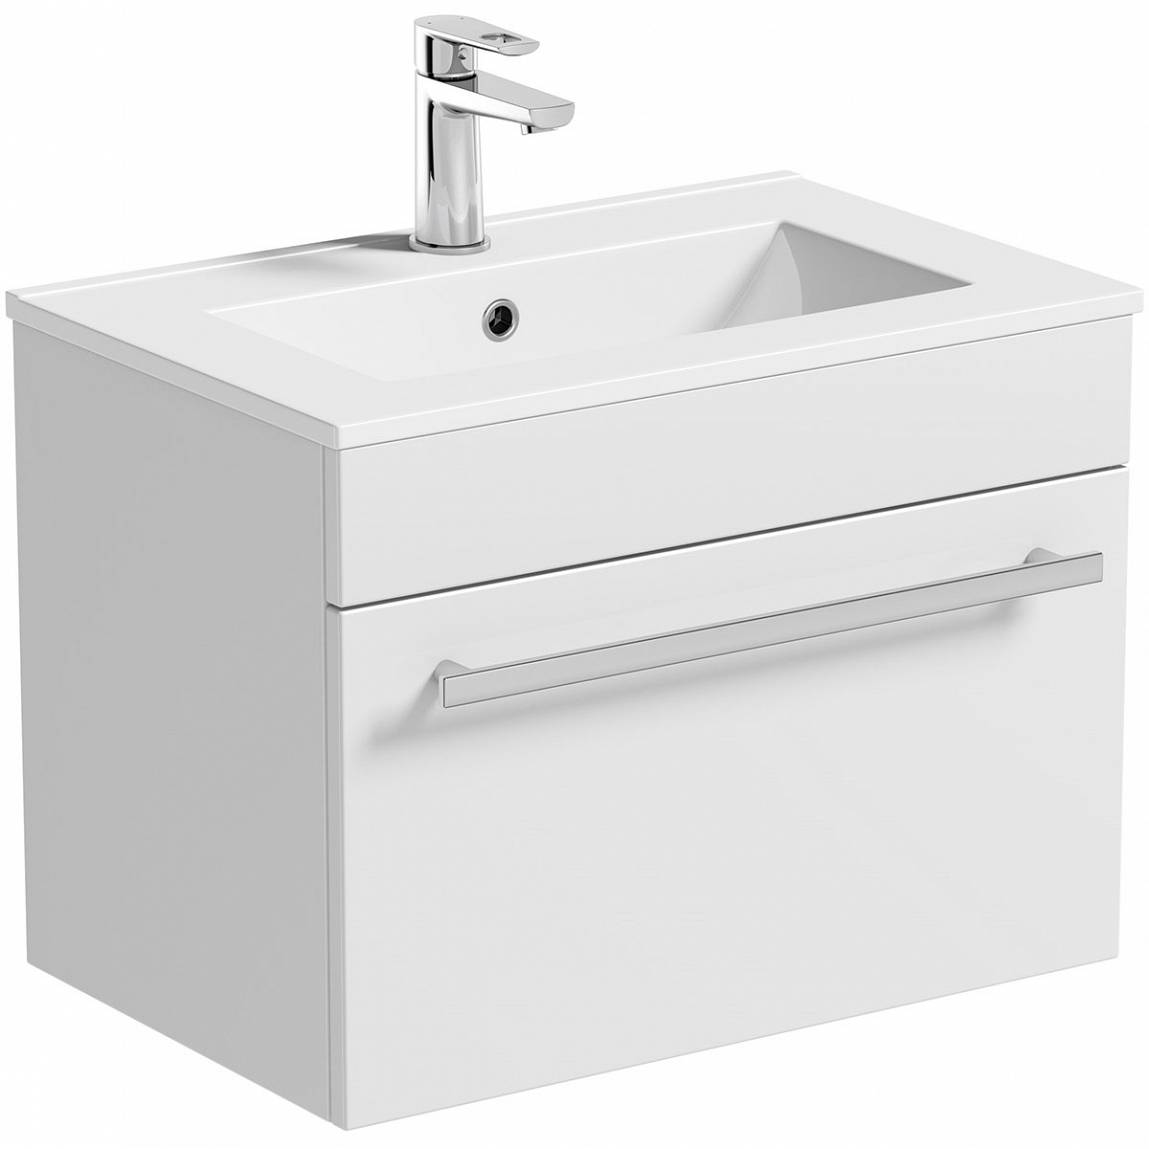 Image of Odessa White Wall Hung 600 Drawer Unit & Inset Basin